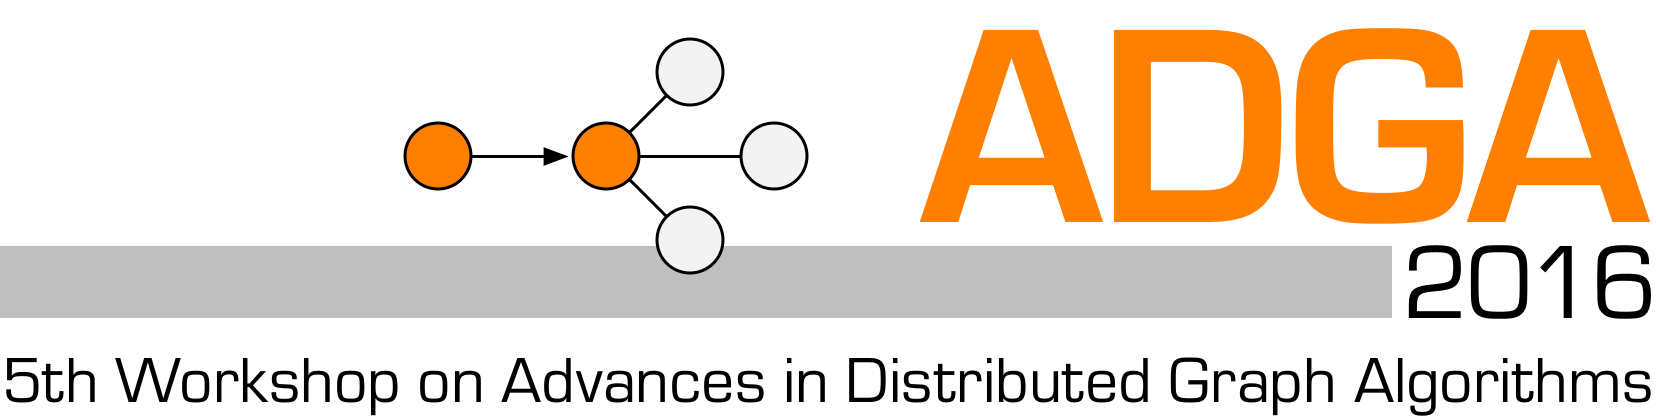 ADGA 2016: 5th Workshop on Advances in Distributed Graph Algorithms